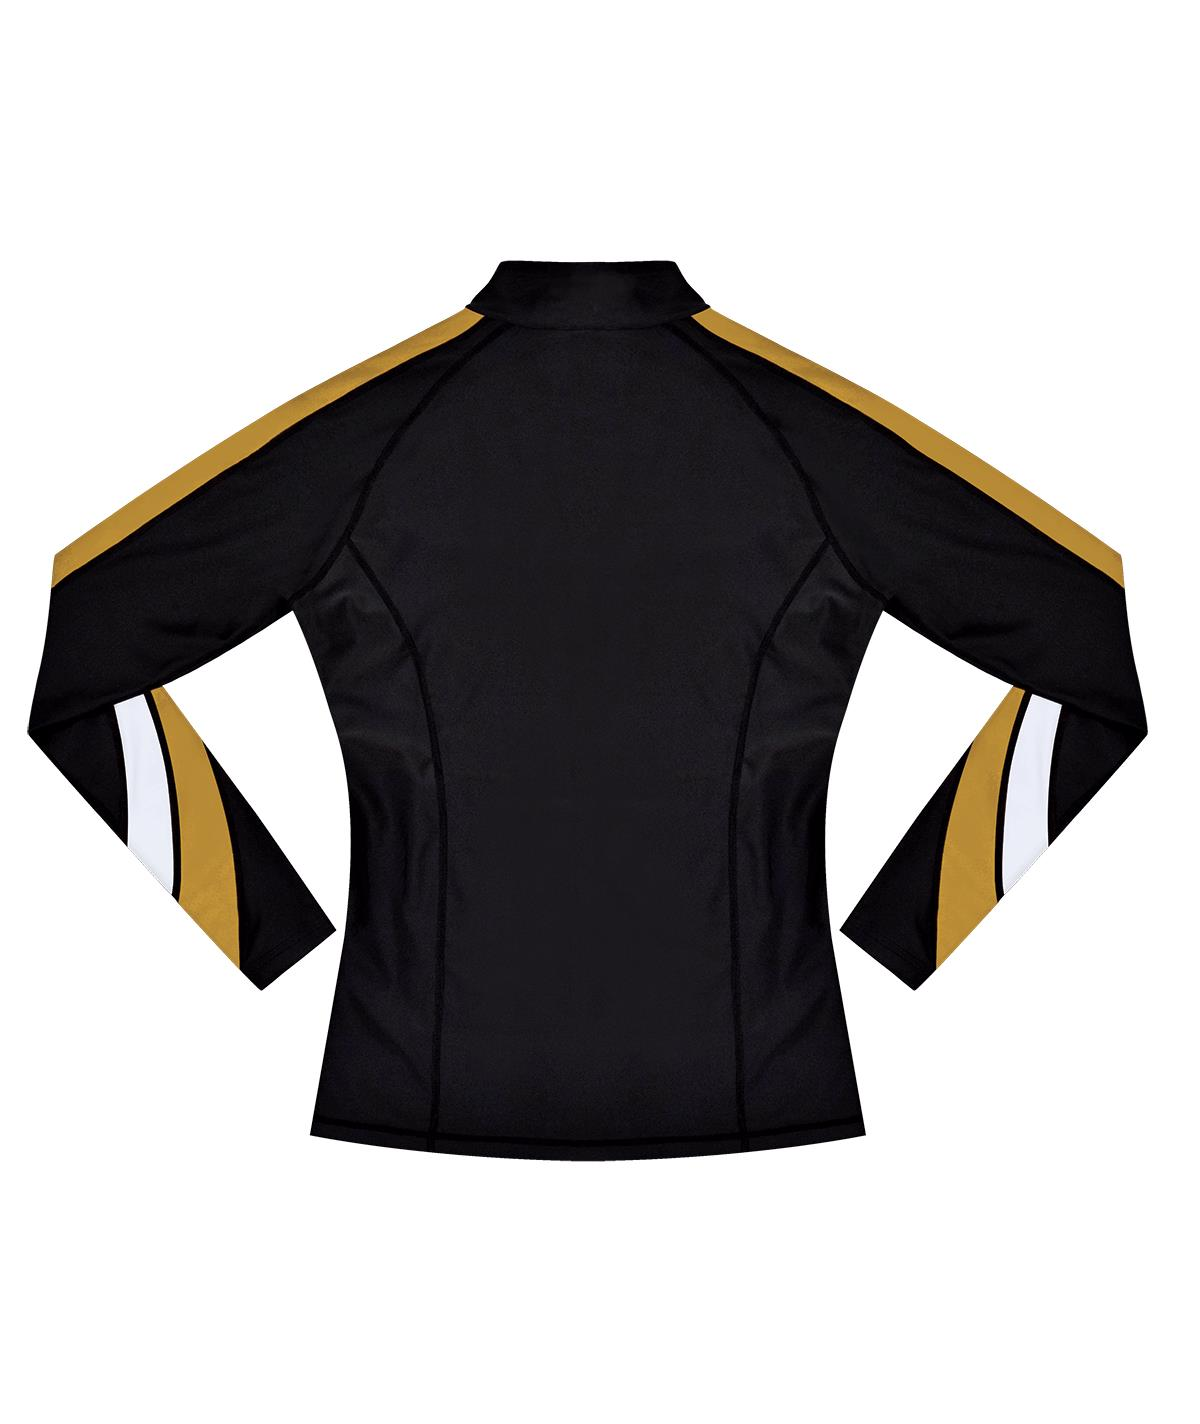 Chassé Performance Metallic VIP Jacket